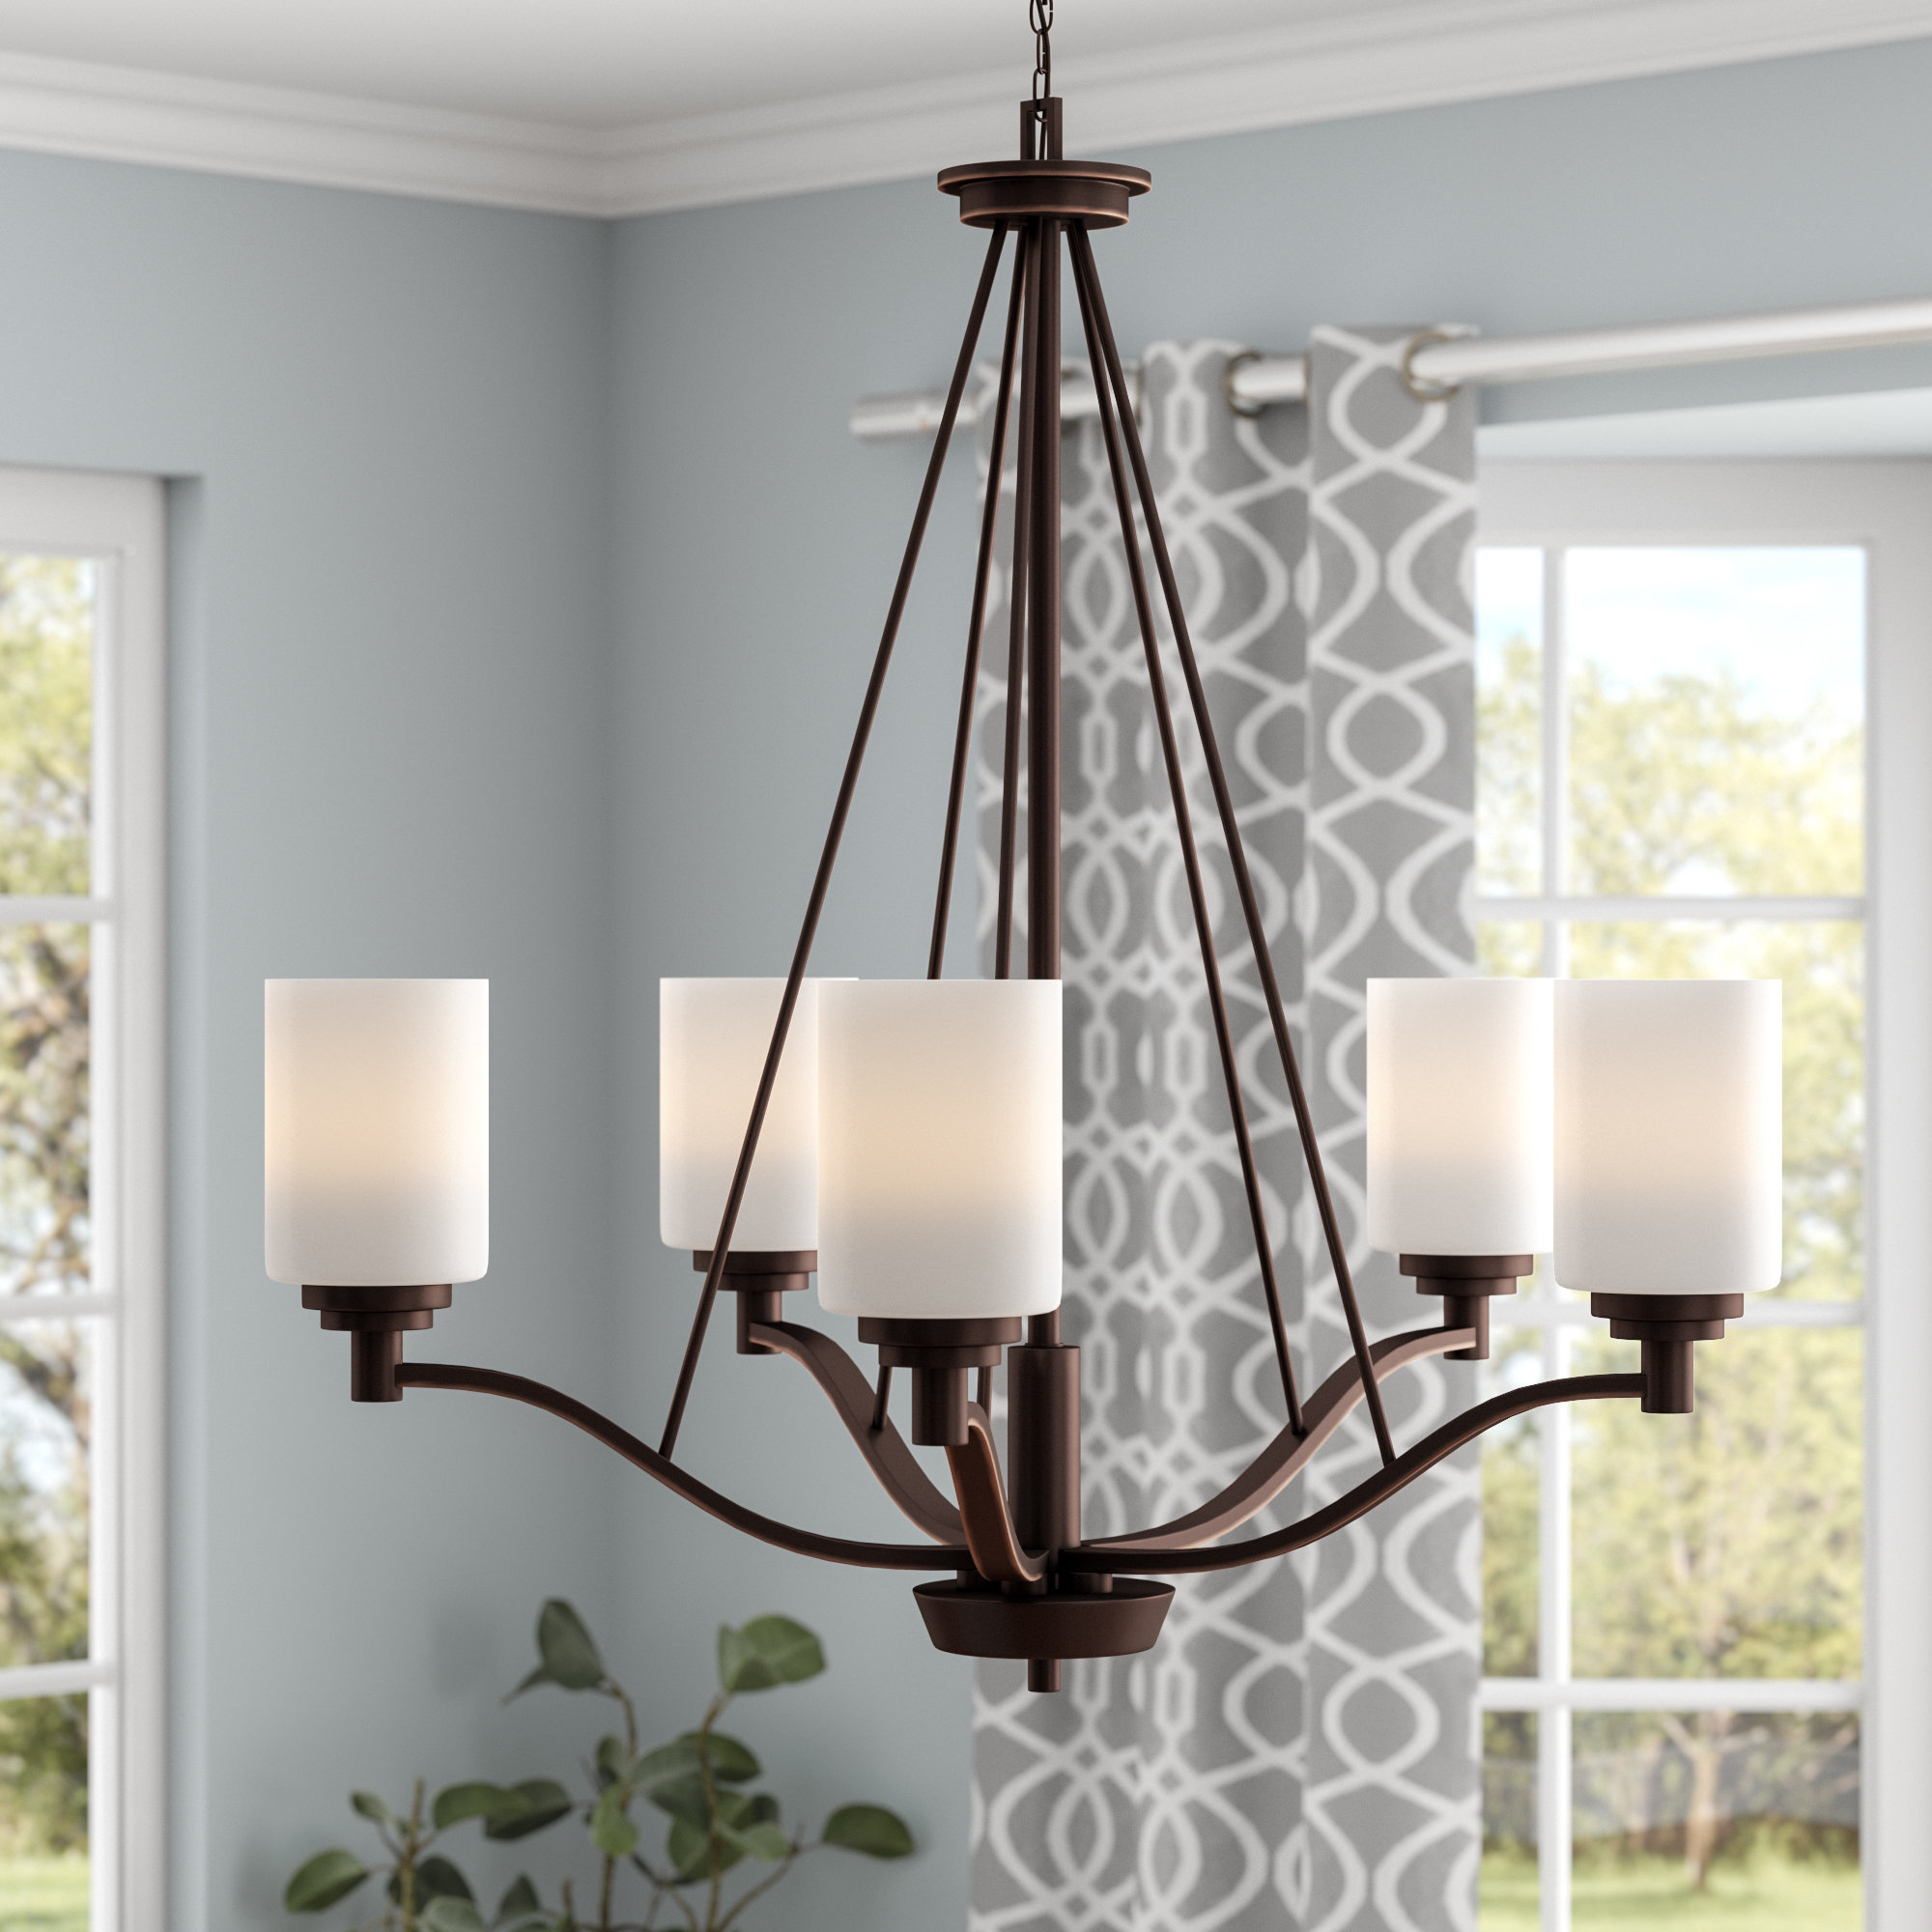 Hester 5-Light Shaded Chandelier throughout Suki 5-Light Shaded Chandeliers (Image 11 of 30)